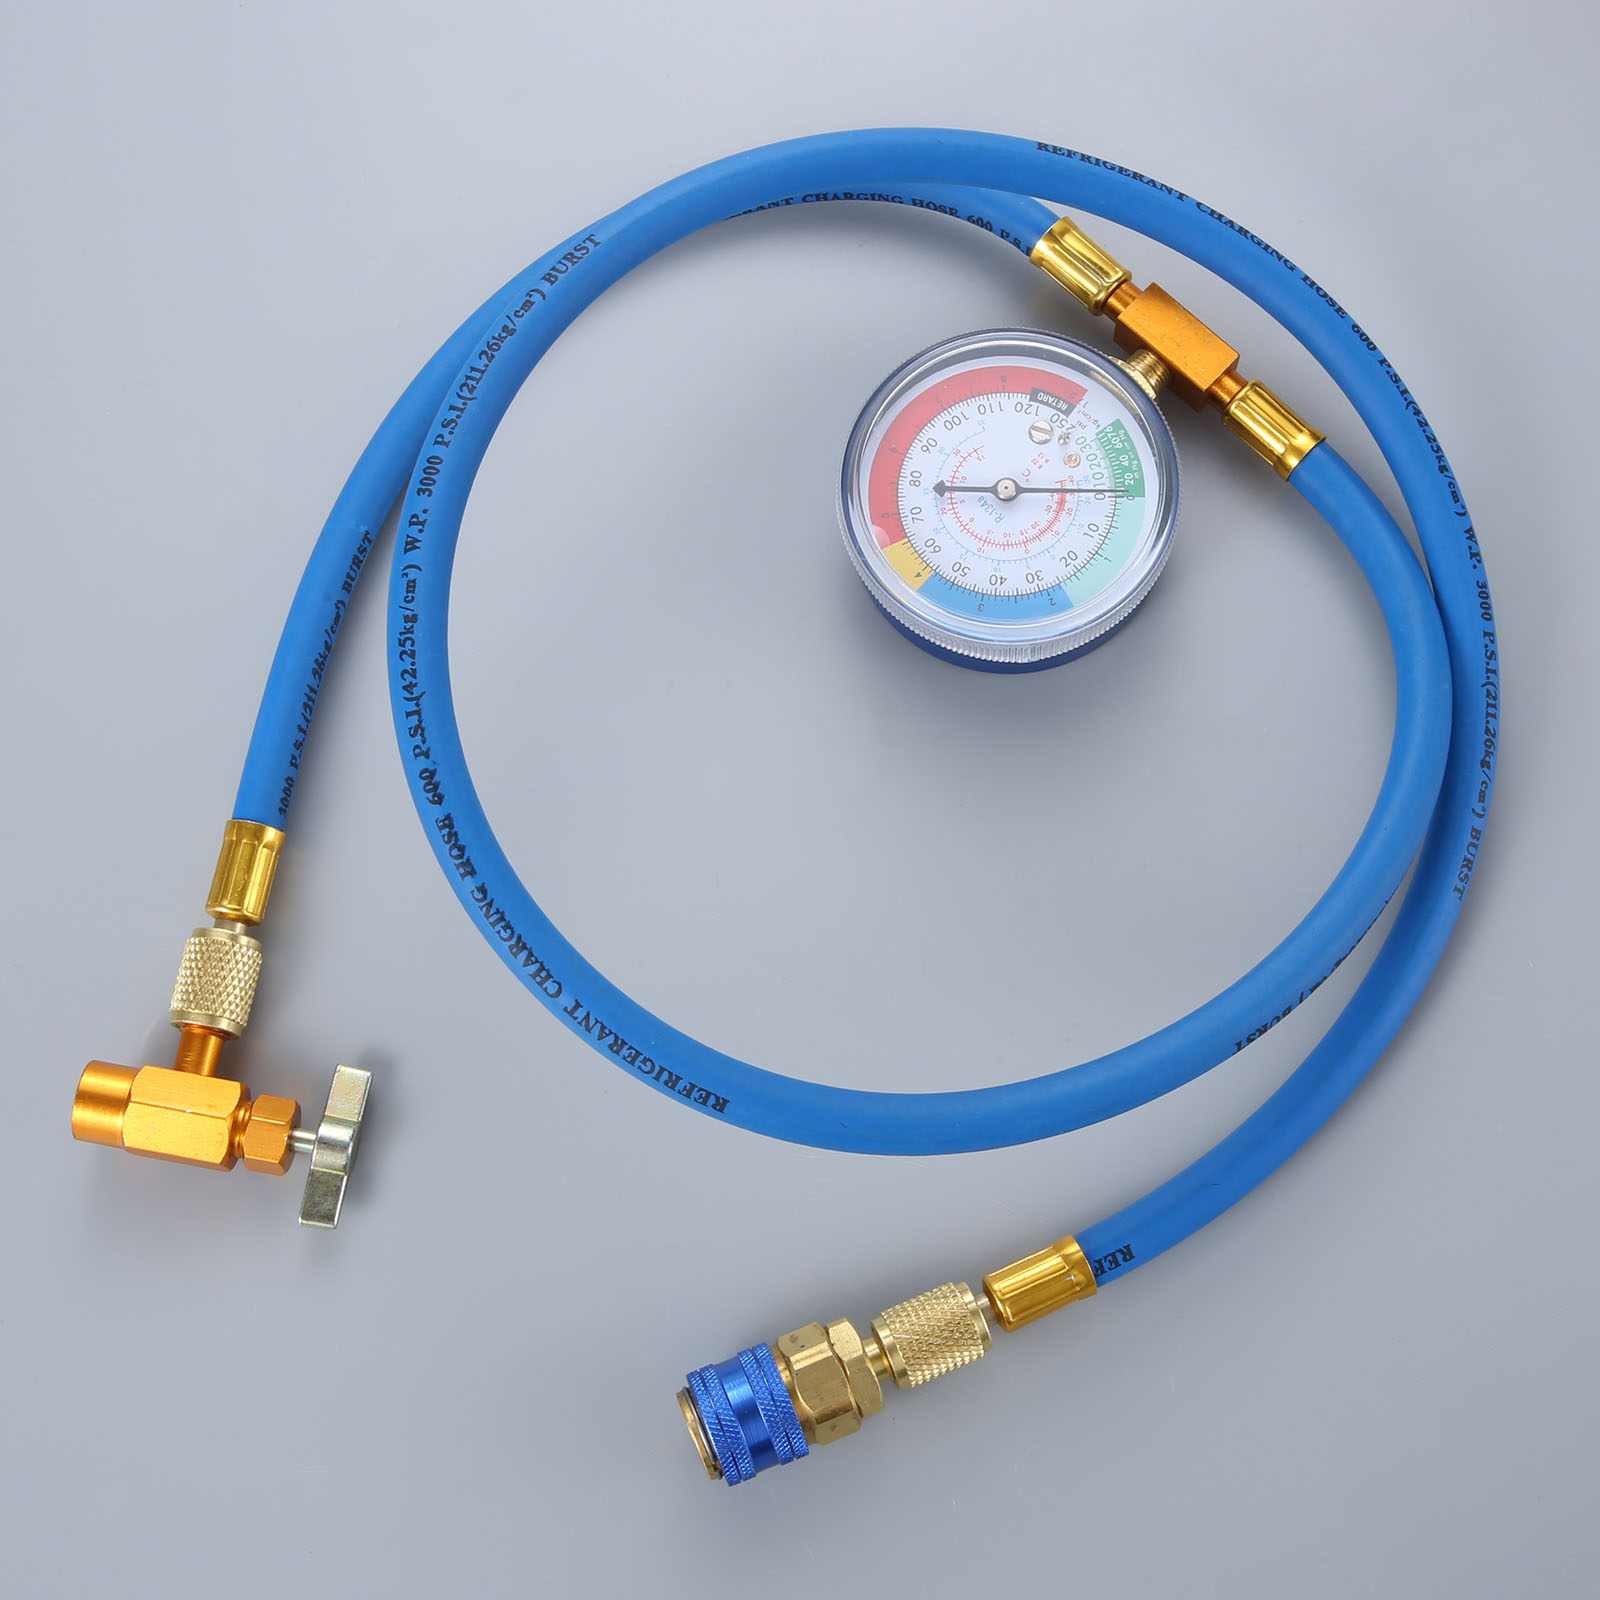 Image 2 - Car AC Air Conditioning R134A Conditioning Refrigerant Recharge Hose w/ Pressure Gauge Can Opener Quick Coupler-in Air-conditioning Installation from Automobiles & Motorcycles